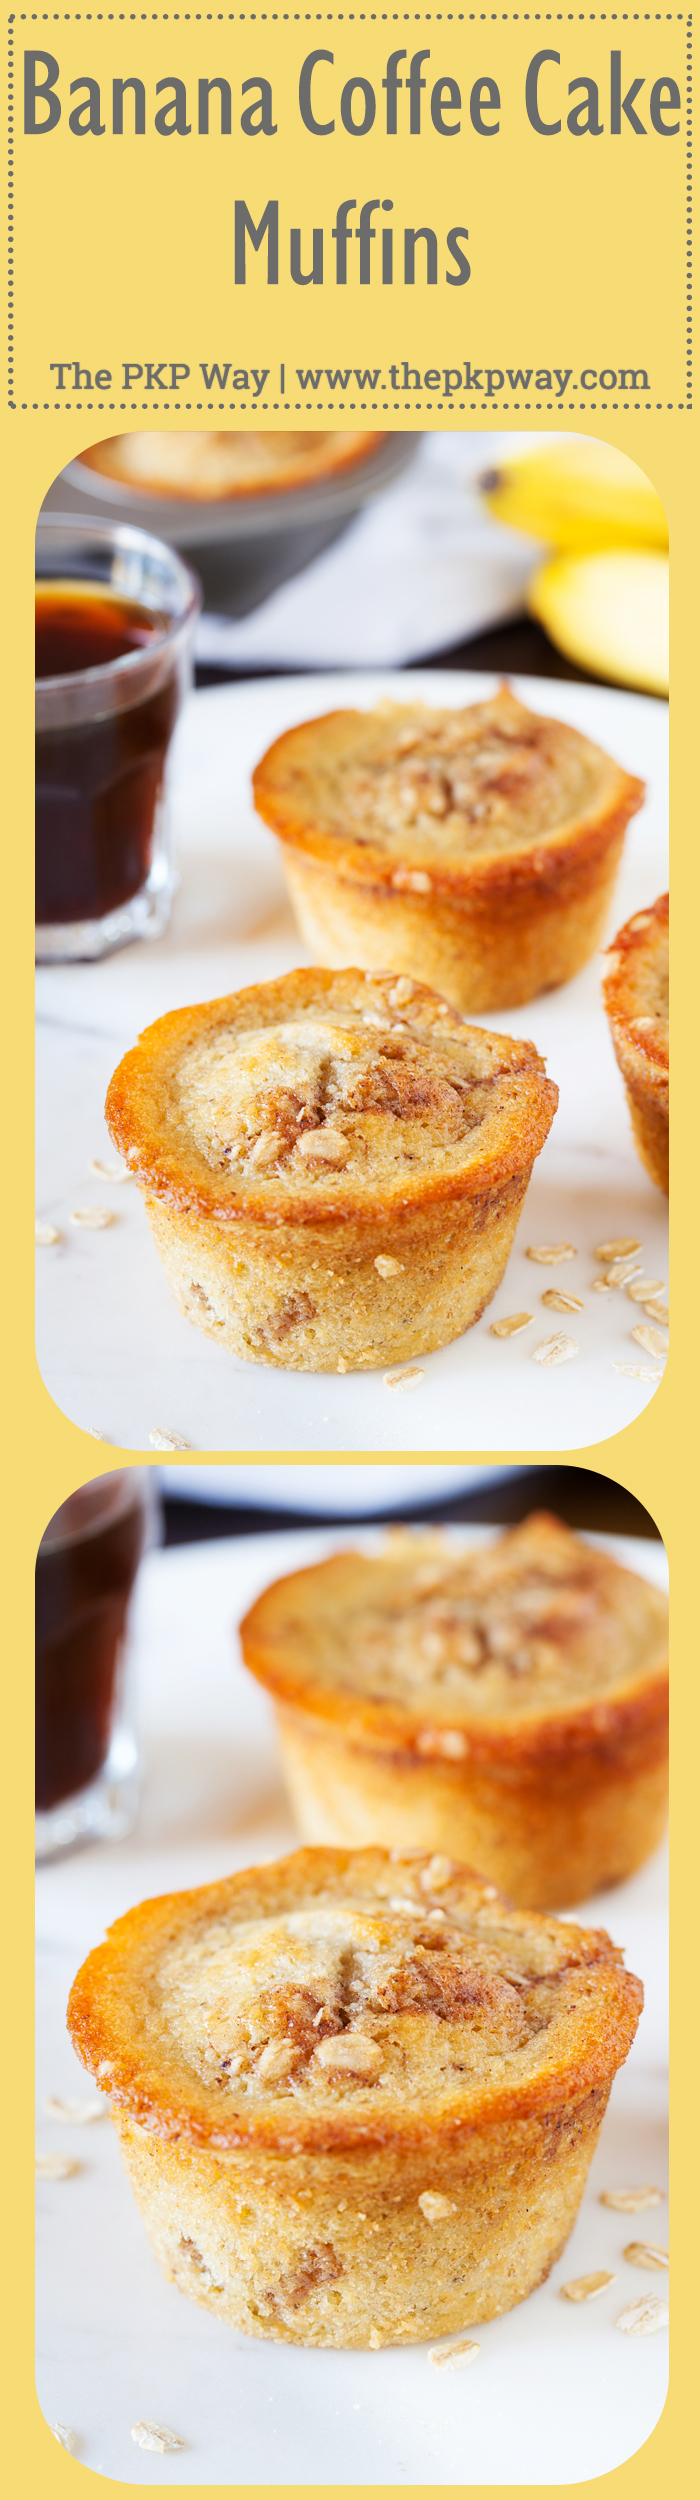 Banana Streusel Coffee Cake Recipe